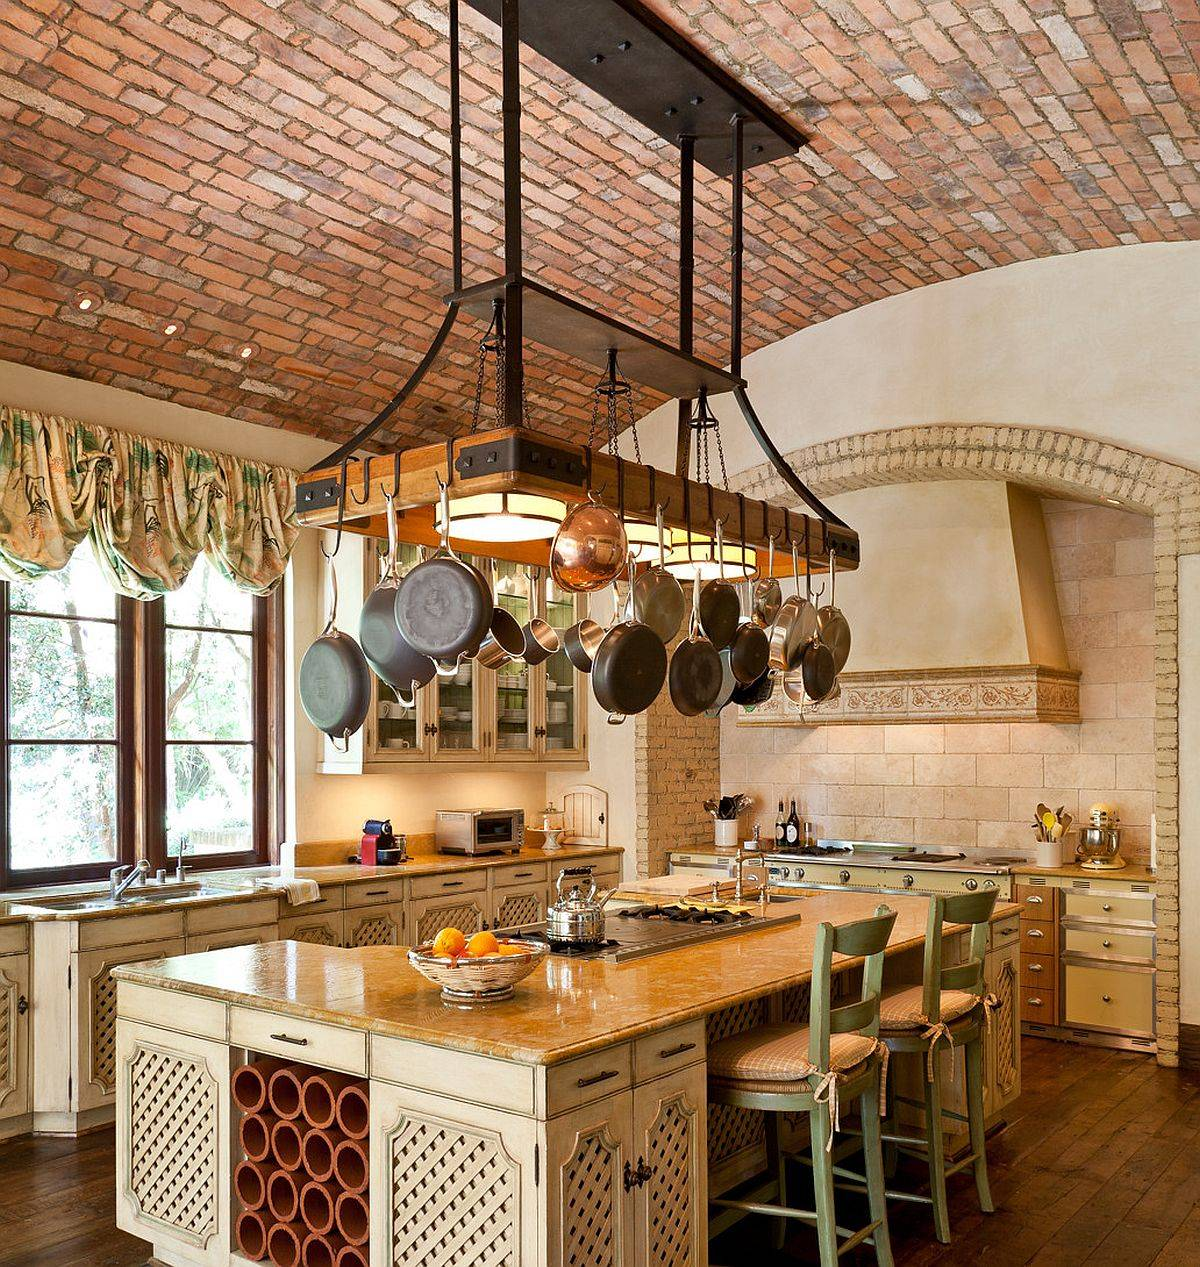 Lighting-si-combined-beautifully-with-the-pot-rack-in-this-expansive-Meidterranean-kitchen-71385